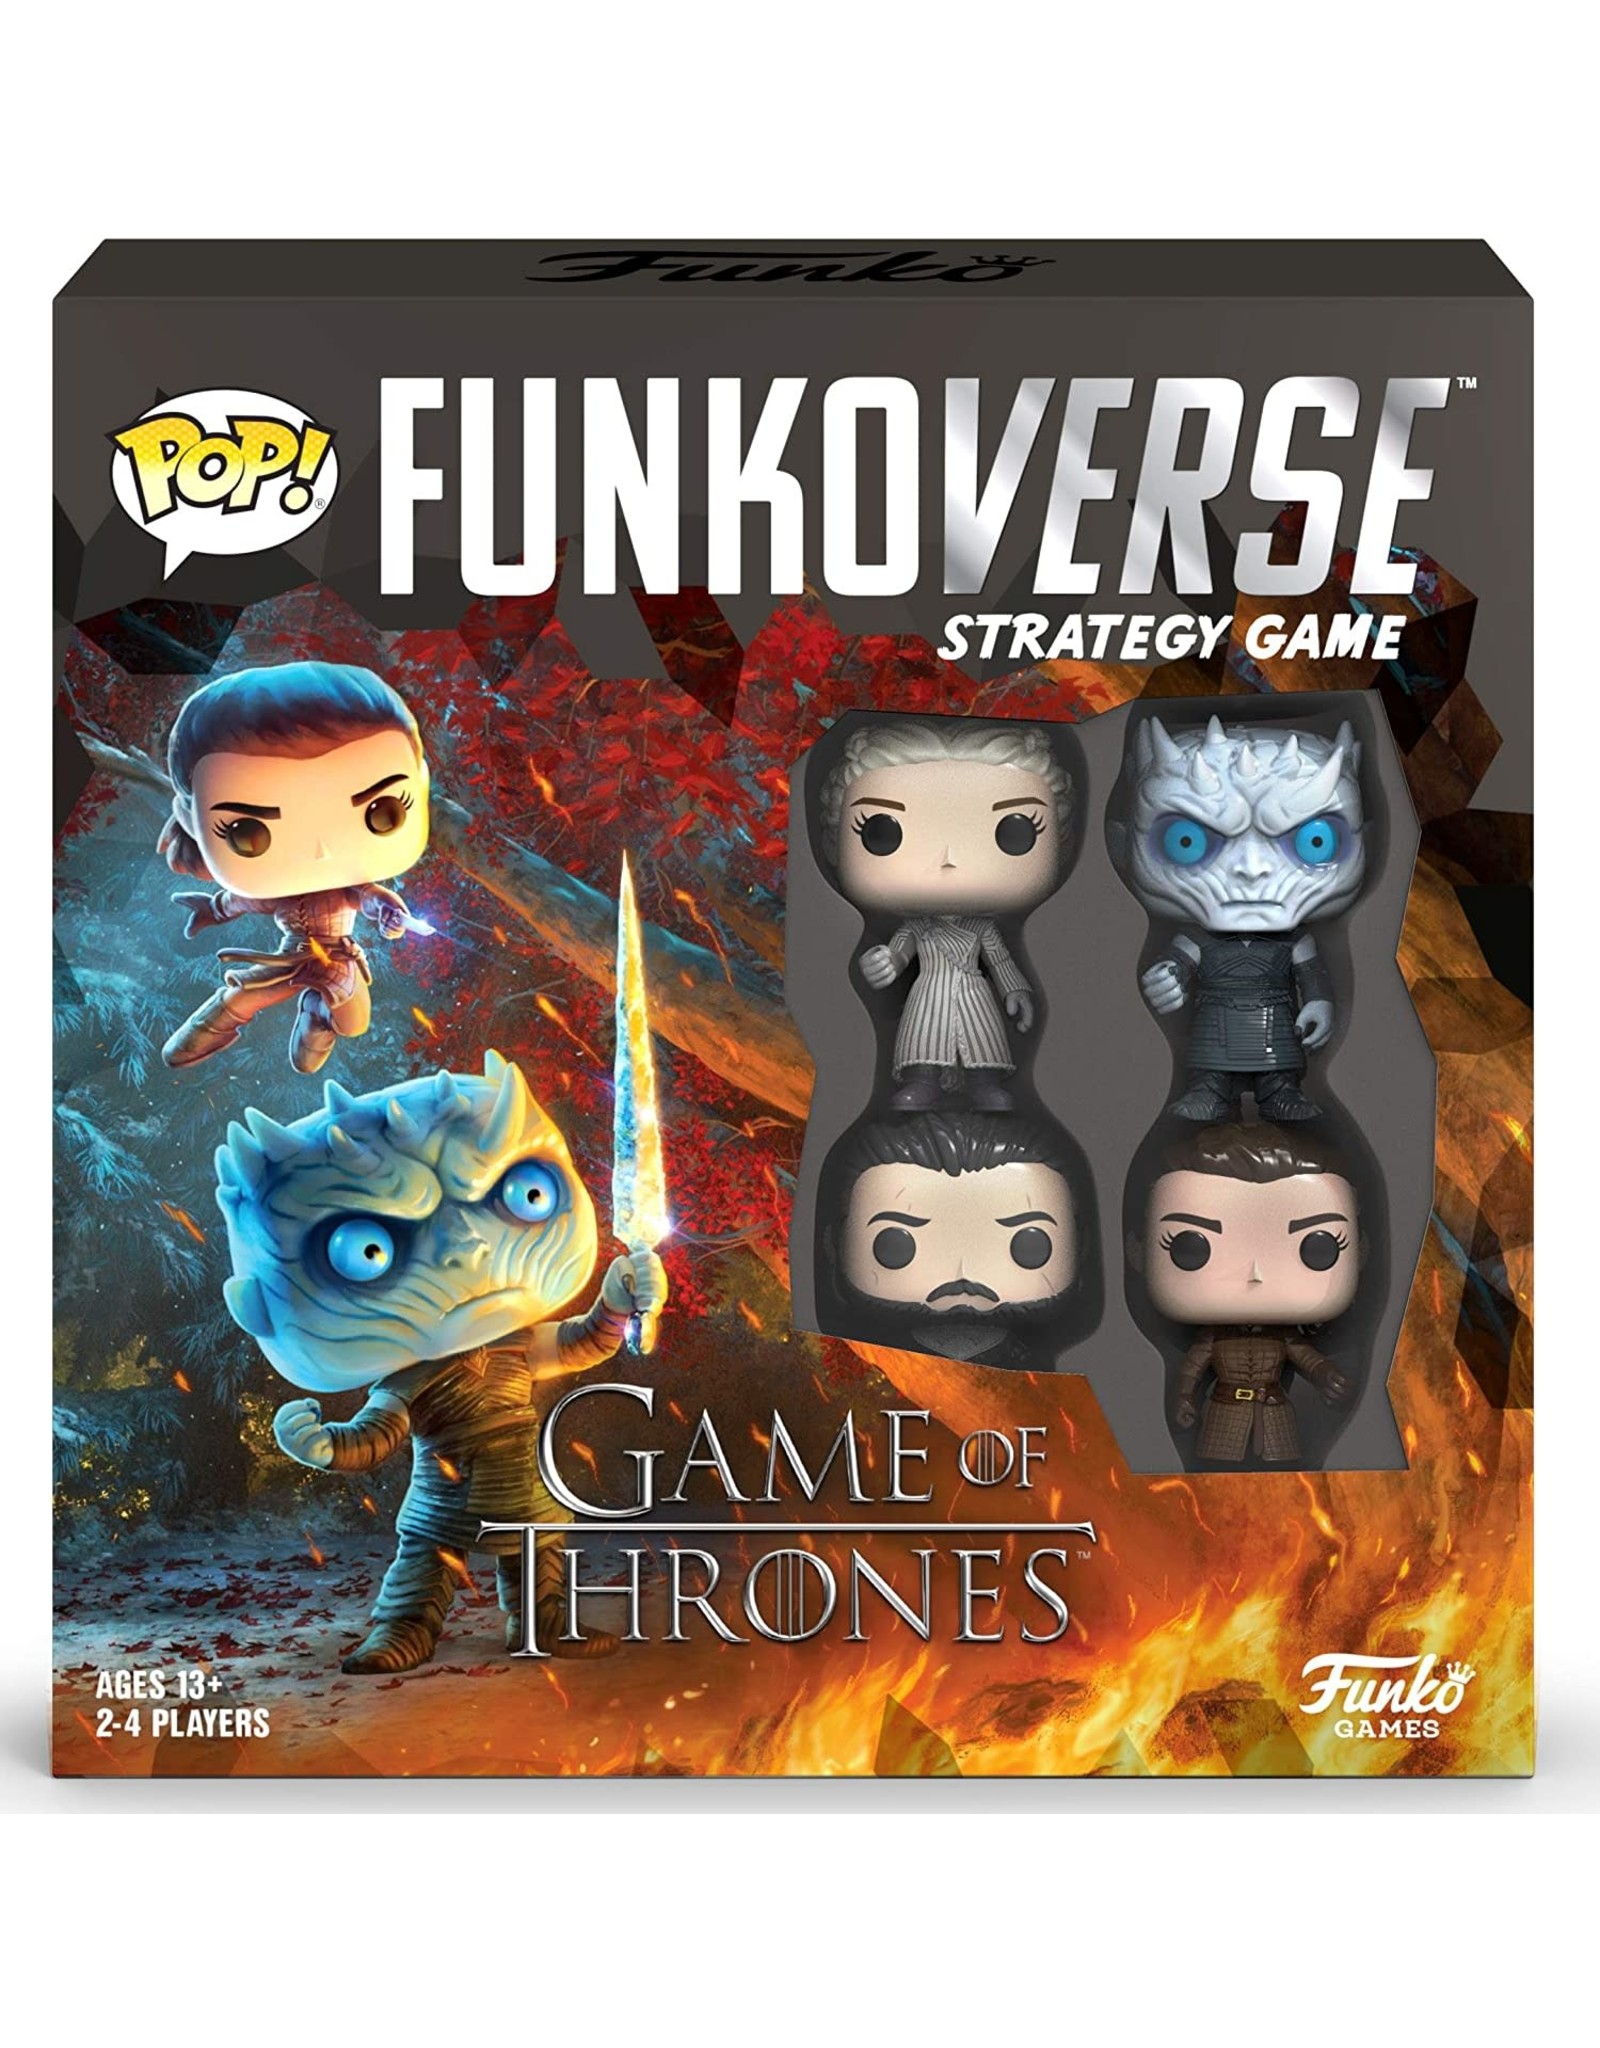 FUNKO POP! FUNKOVERSE STRATEGY GAME - GAME OF THRONES 100